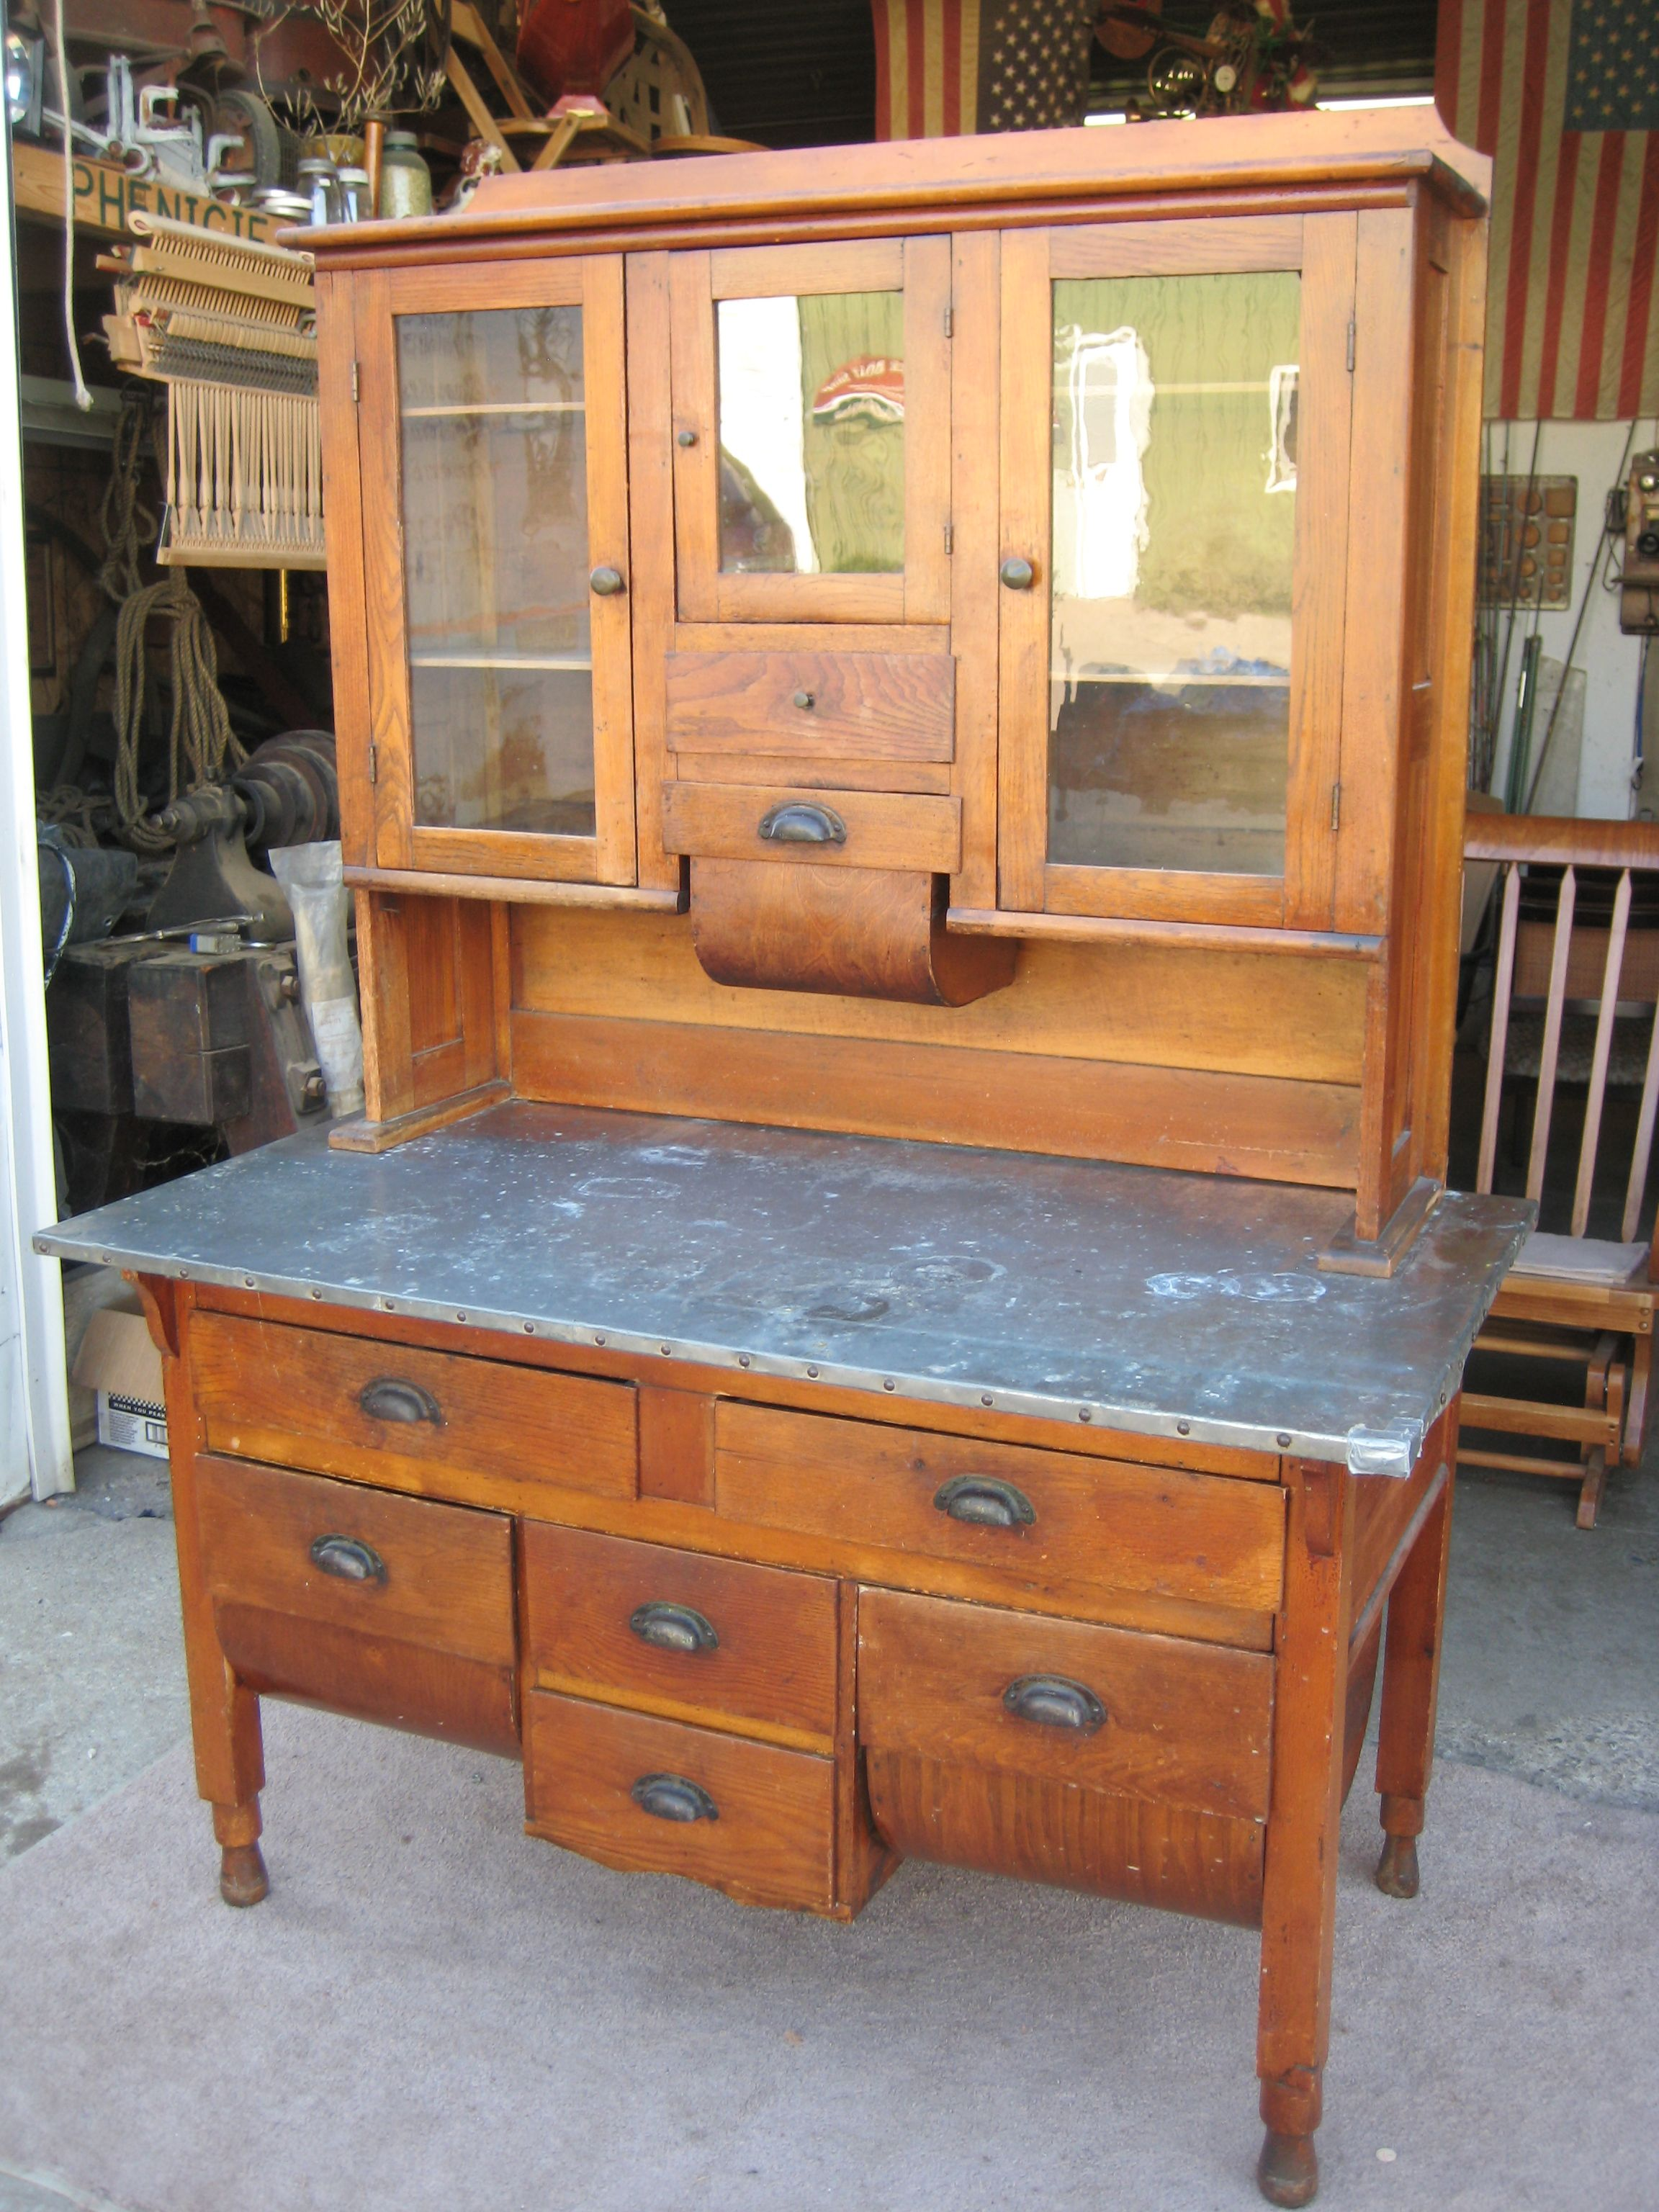 Merveilleux Pre Hoosier Cabinet Just Arrived At The (@Mark Phenicie) Shop To Be  Restored. I Canu0027t See Anything That Needs To Be Restored Here   Send Us A  Pic When You ...